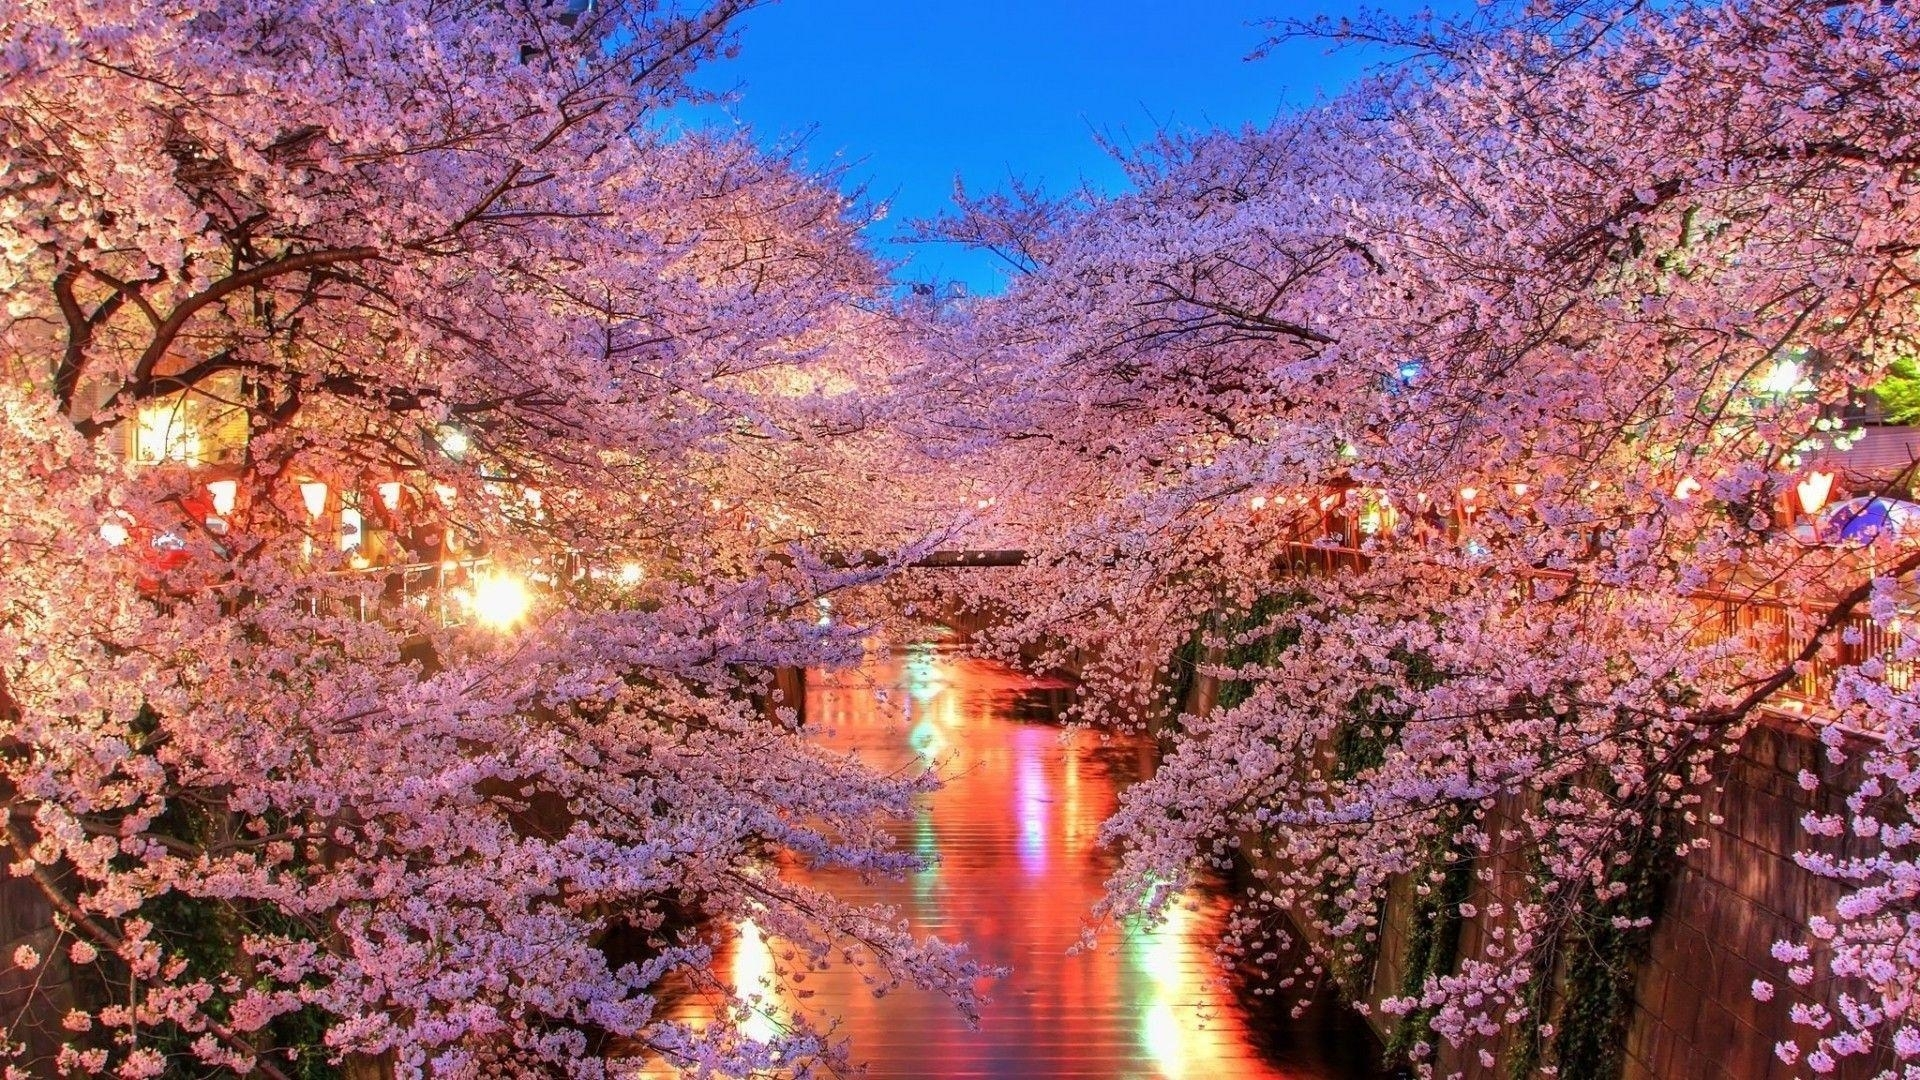 cherry blossom desktop backgrounds - wallpaper cave